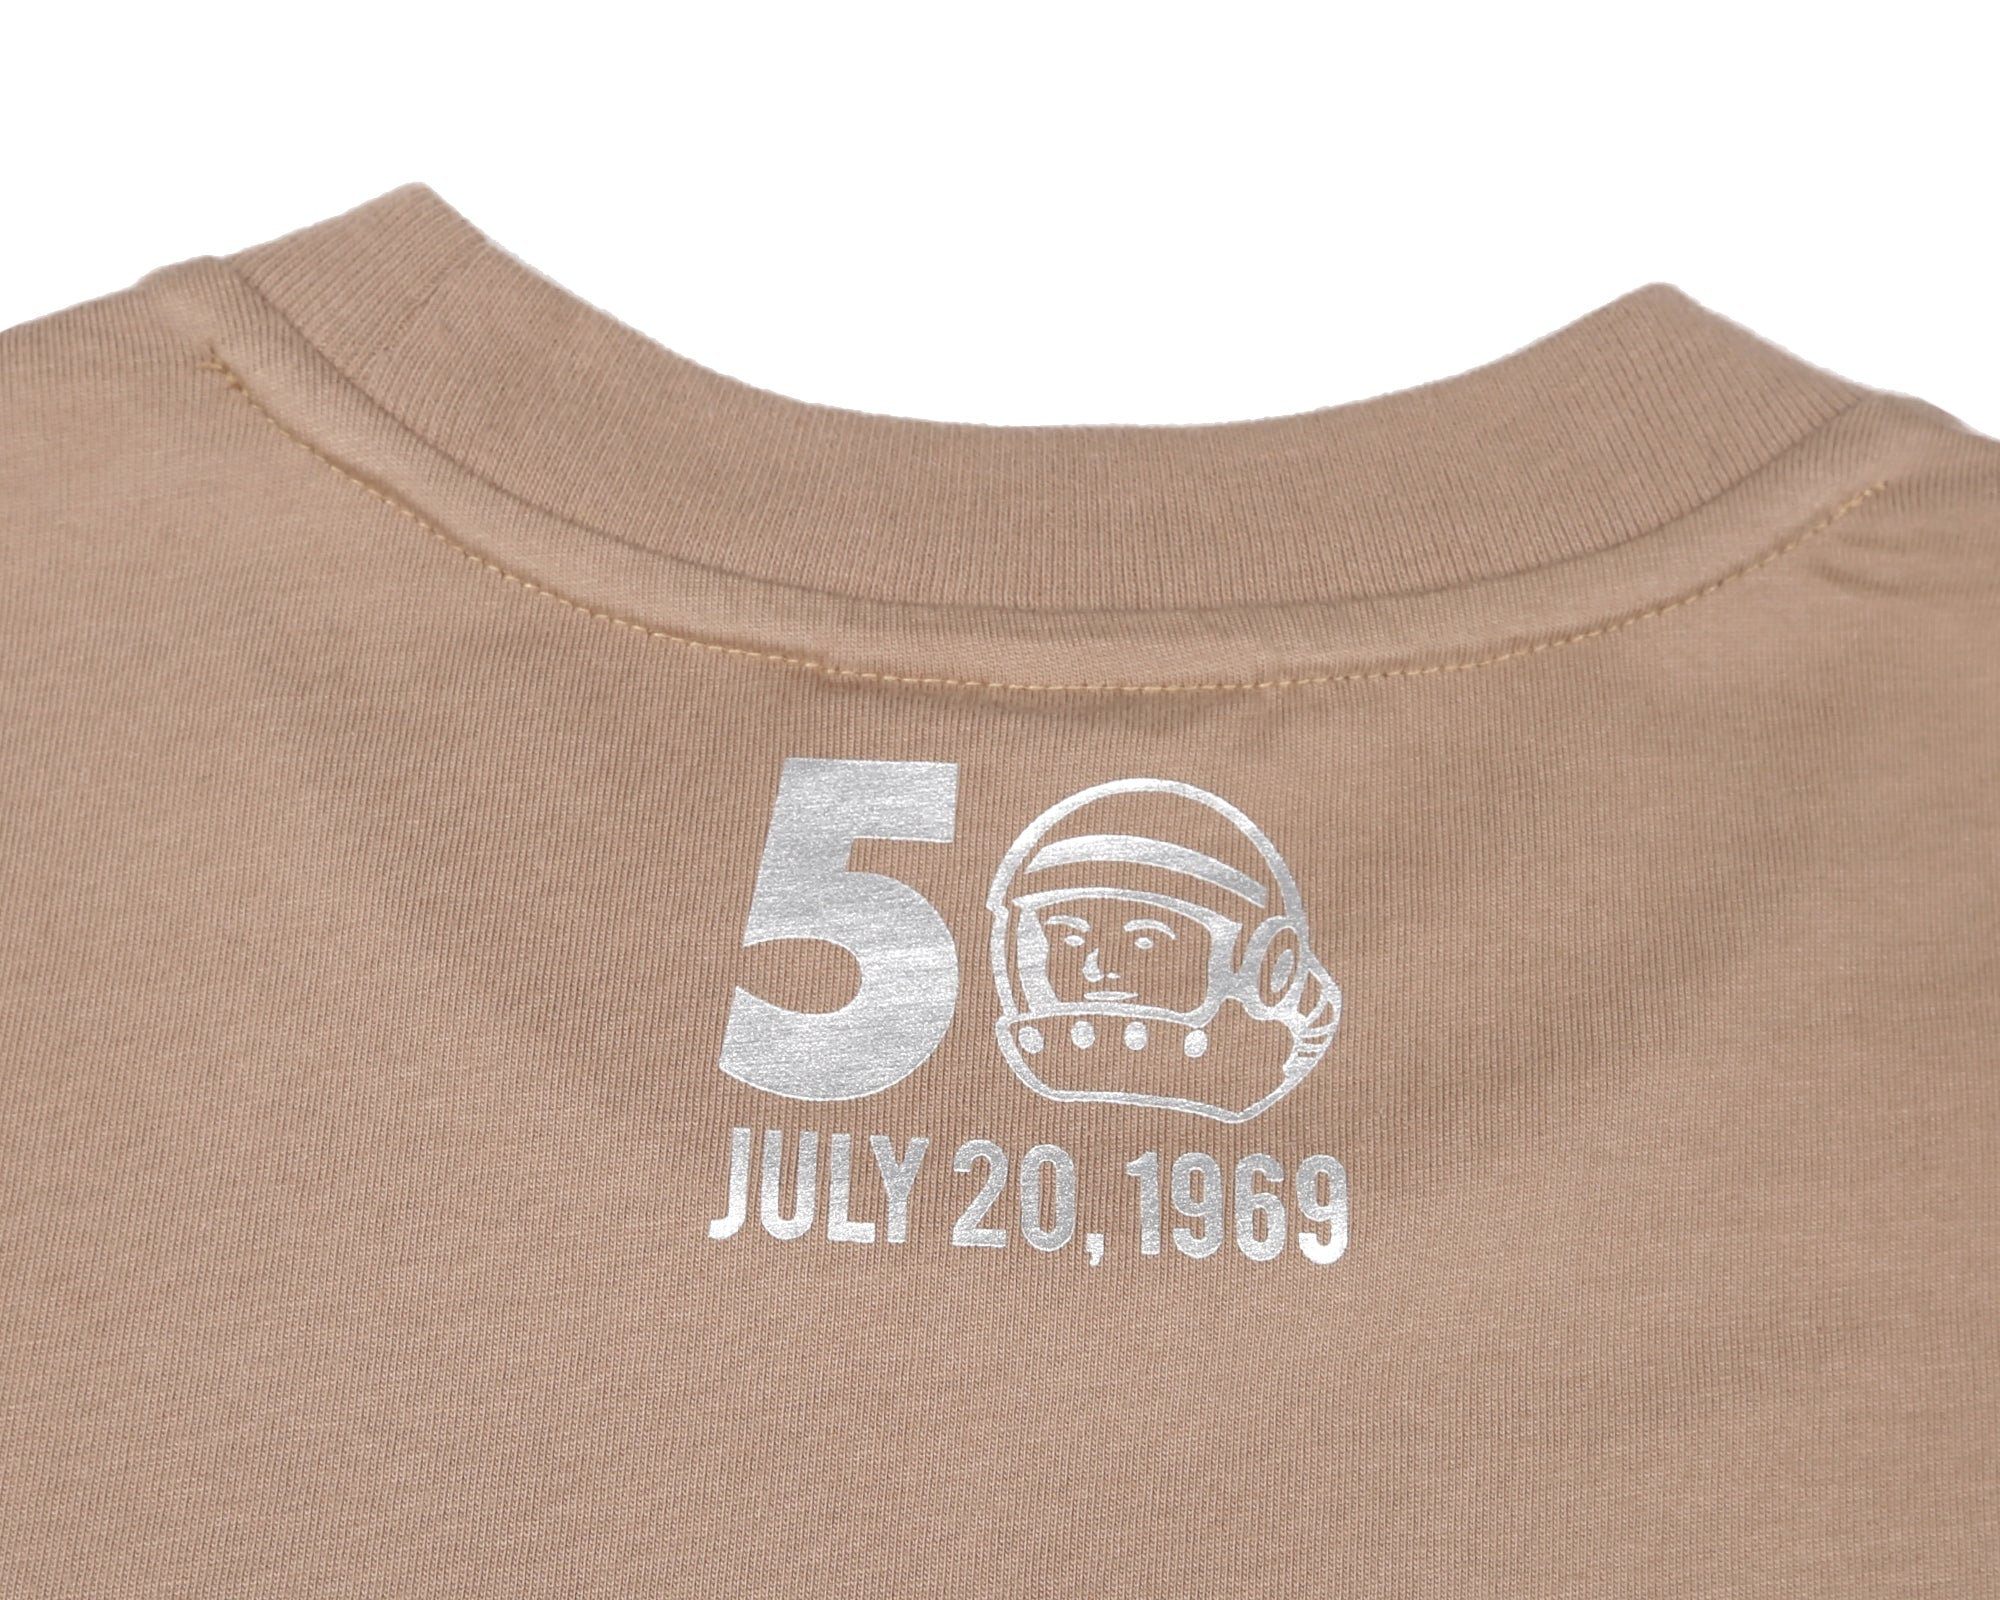 FOIL ANNIVERSARY GRAPHIC T-SHIRT - SAND